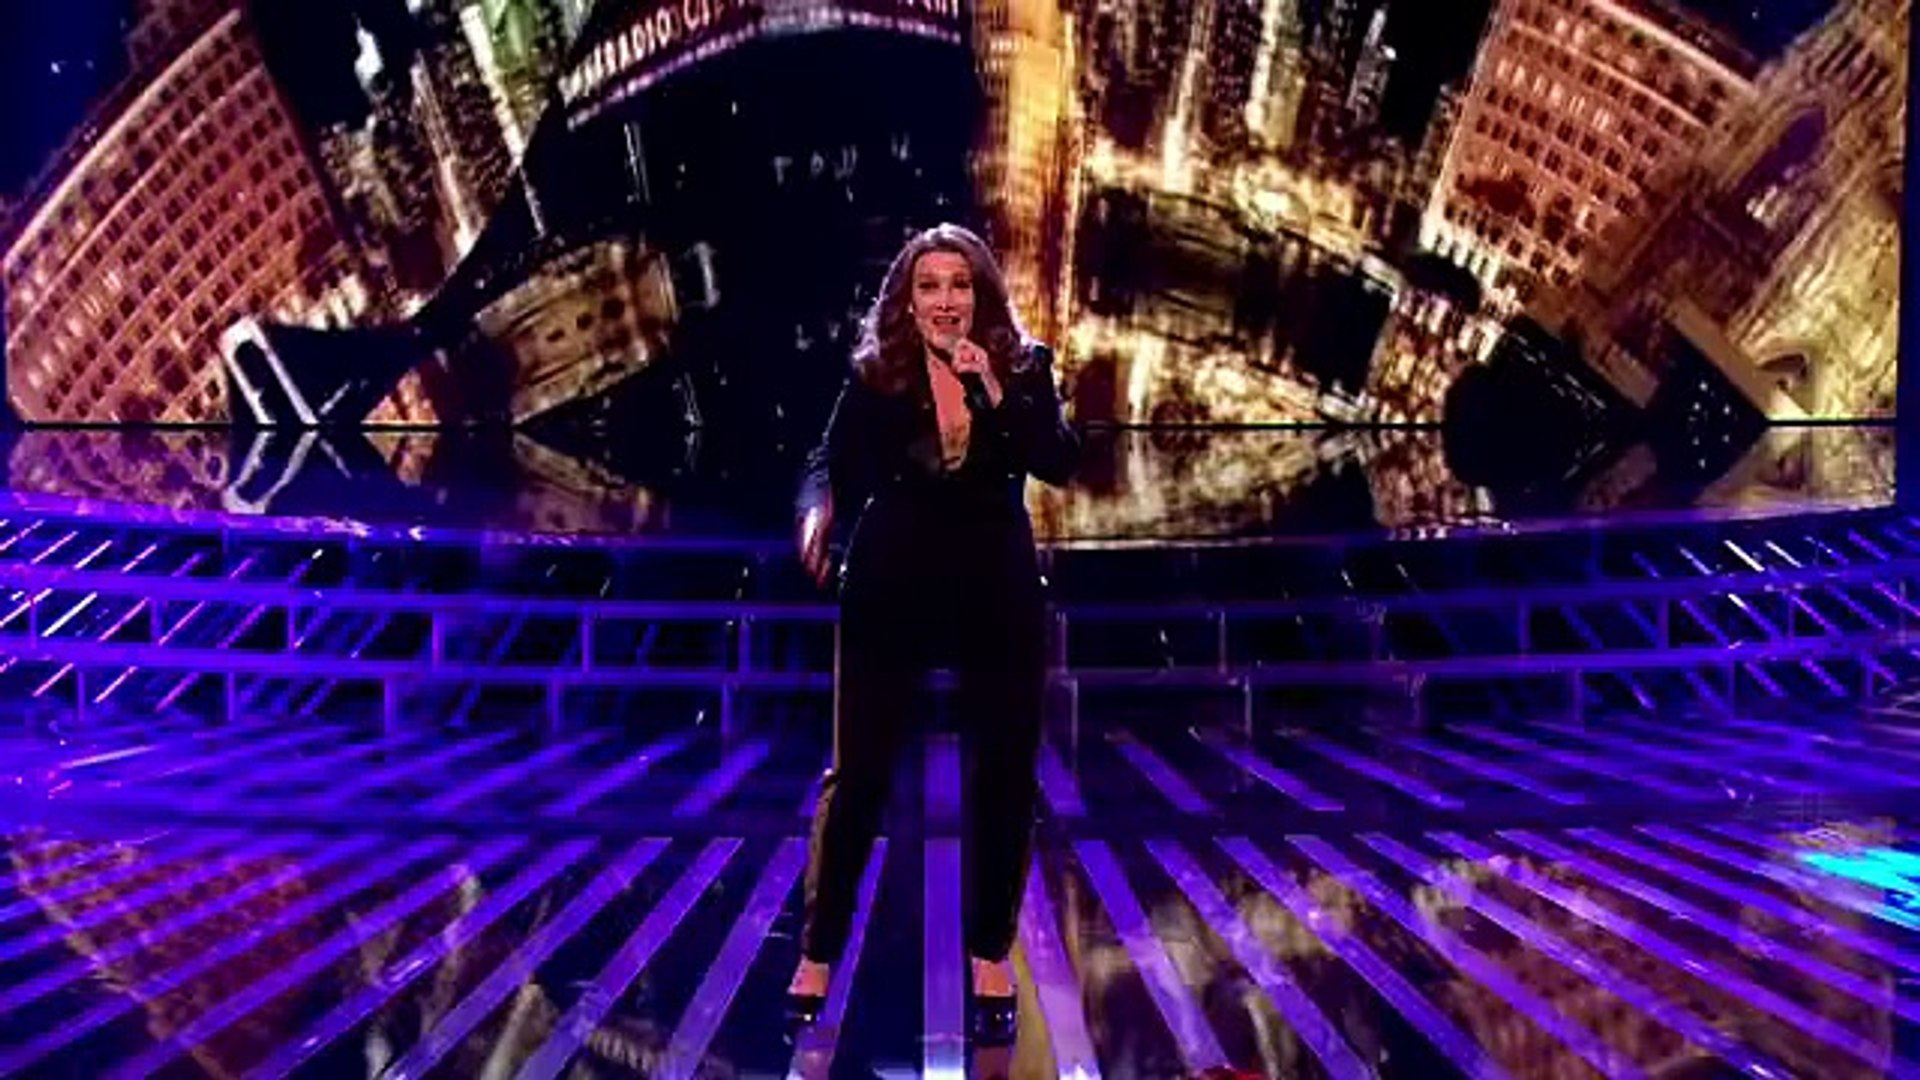 Sam Bailey sings New York New York by Frank Sinatra - Live Week 5 - The X Factor 2013 -Official Chan